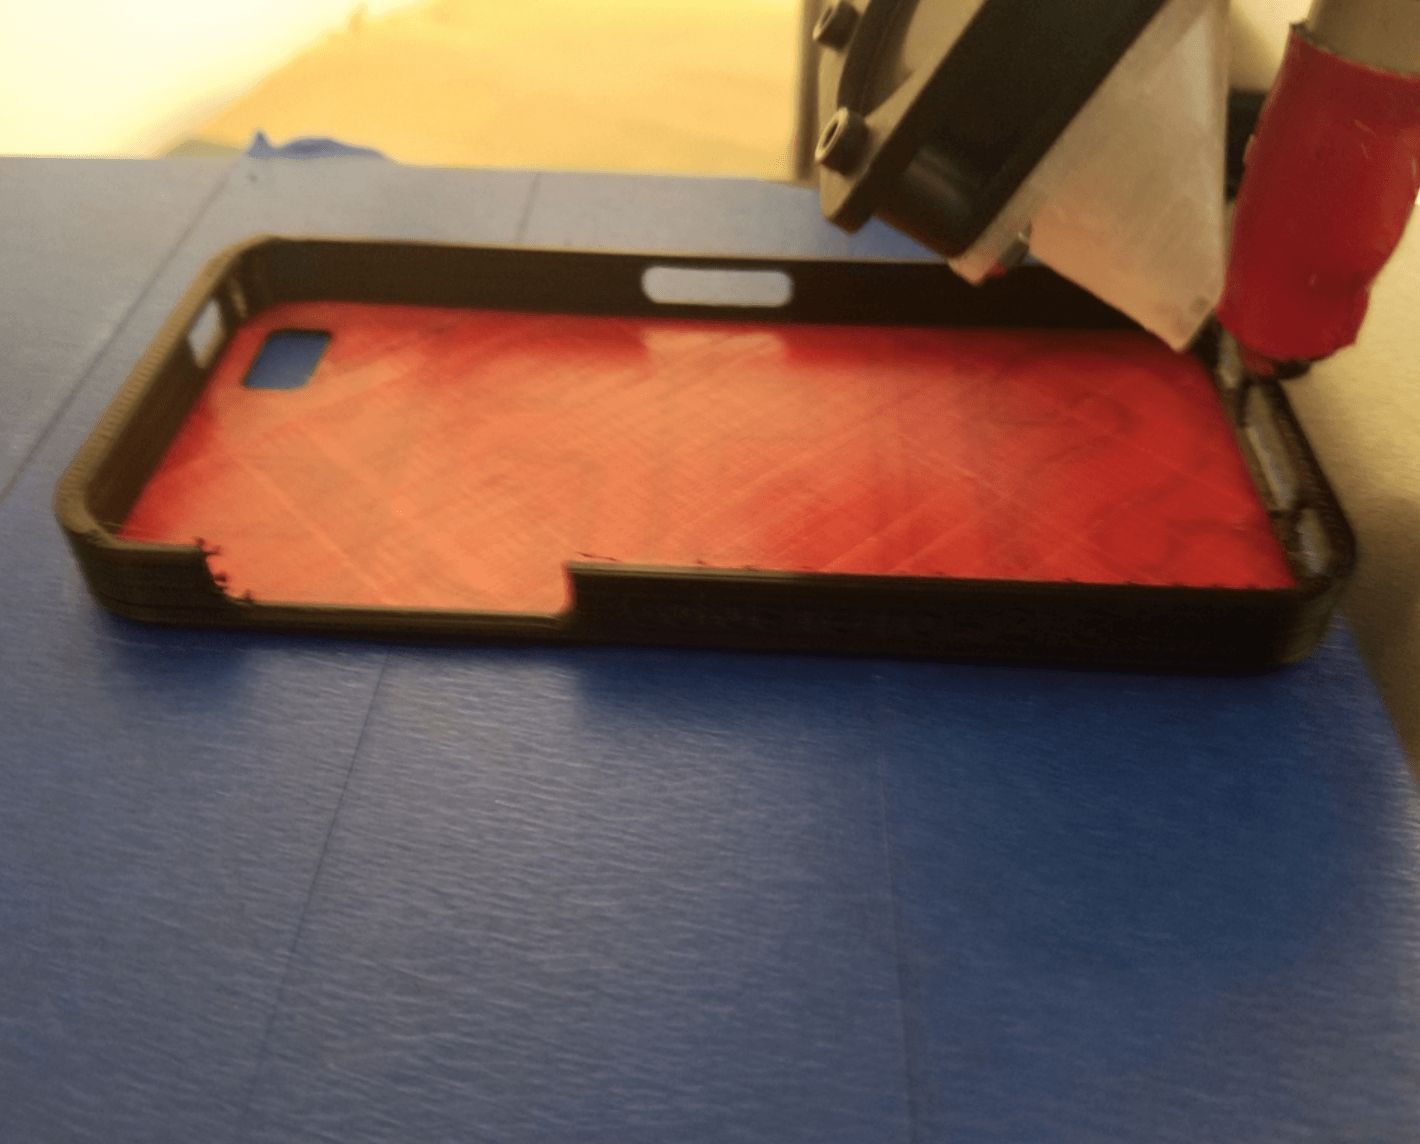 Capture d'écran 2018-03-26 à 16.42.37.png Download free STL file Rainbow Six Siege 5c case • 3D print object, stensethjeremy